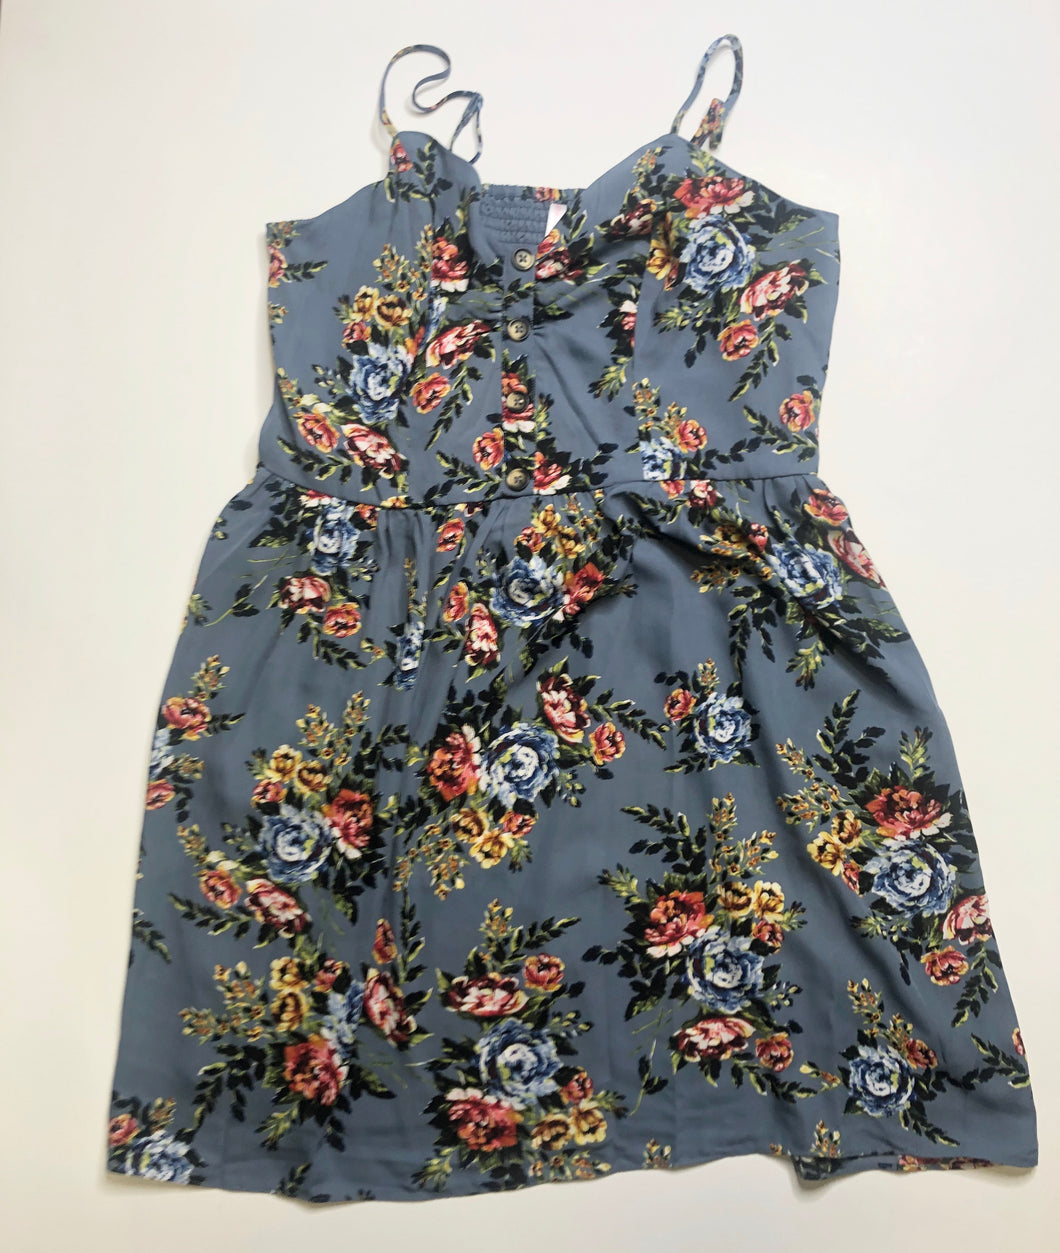 Xhilararion dress SIZE XXL